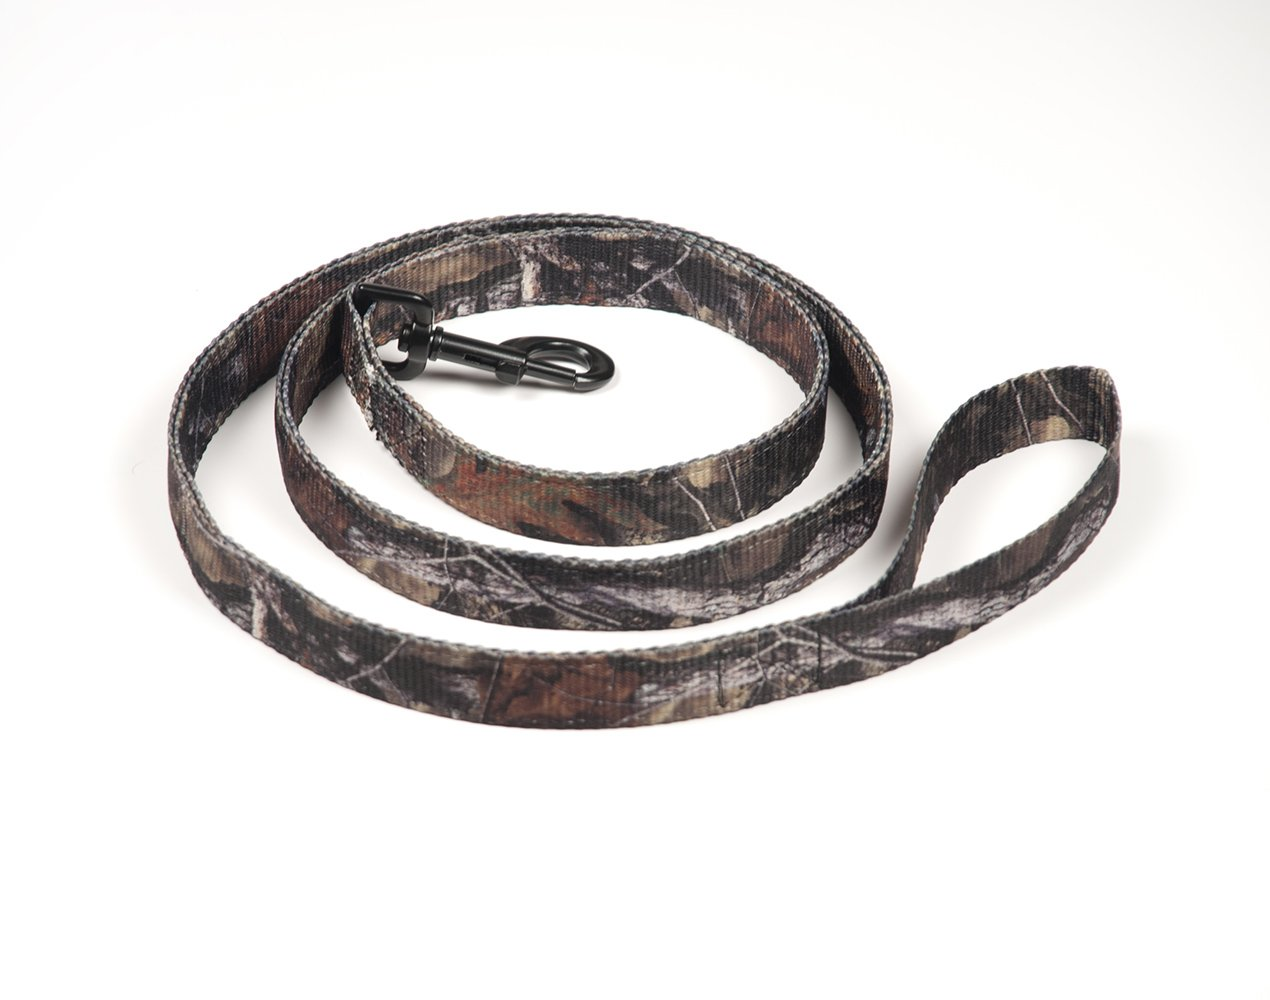 Pet Champion Hunting 5ft No Pull Easy Lead Dog Leash, Mossy Oak Camo, Large 1in x 5ft by Pet Champion